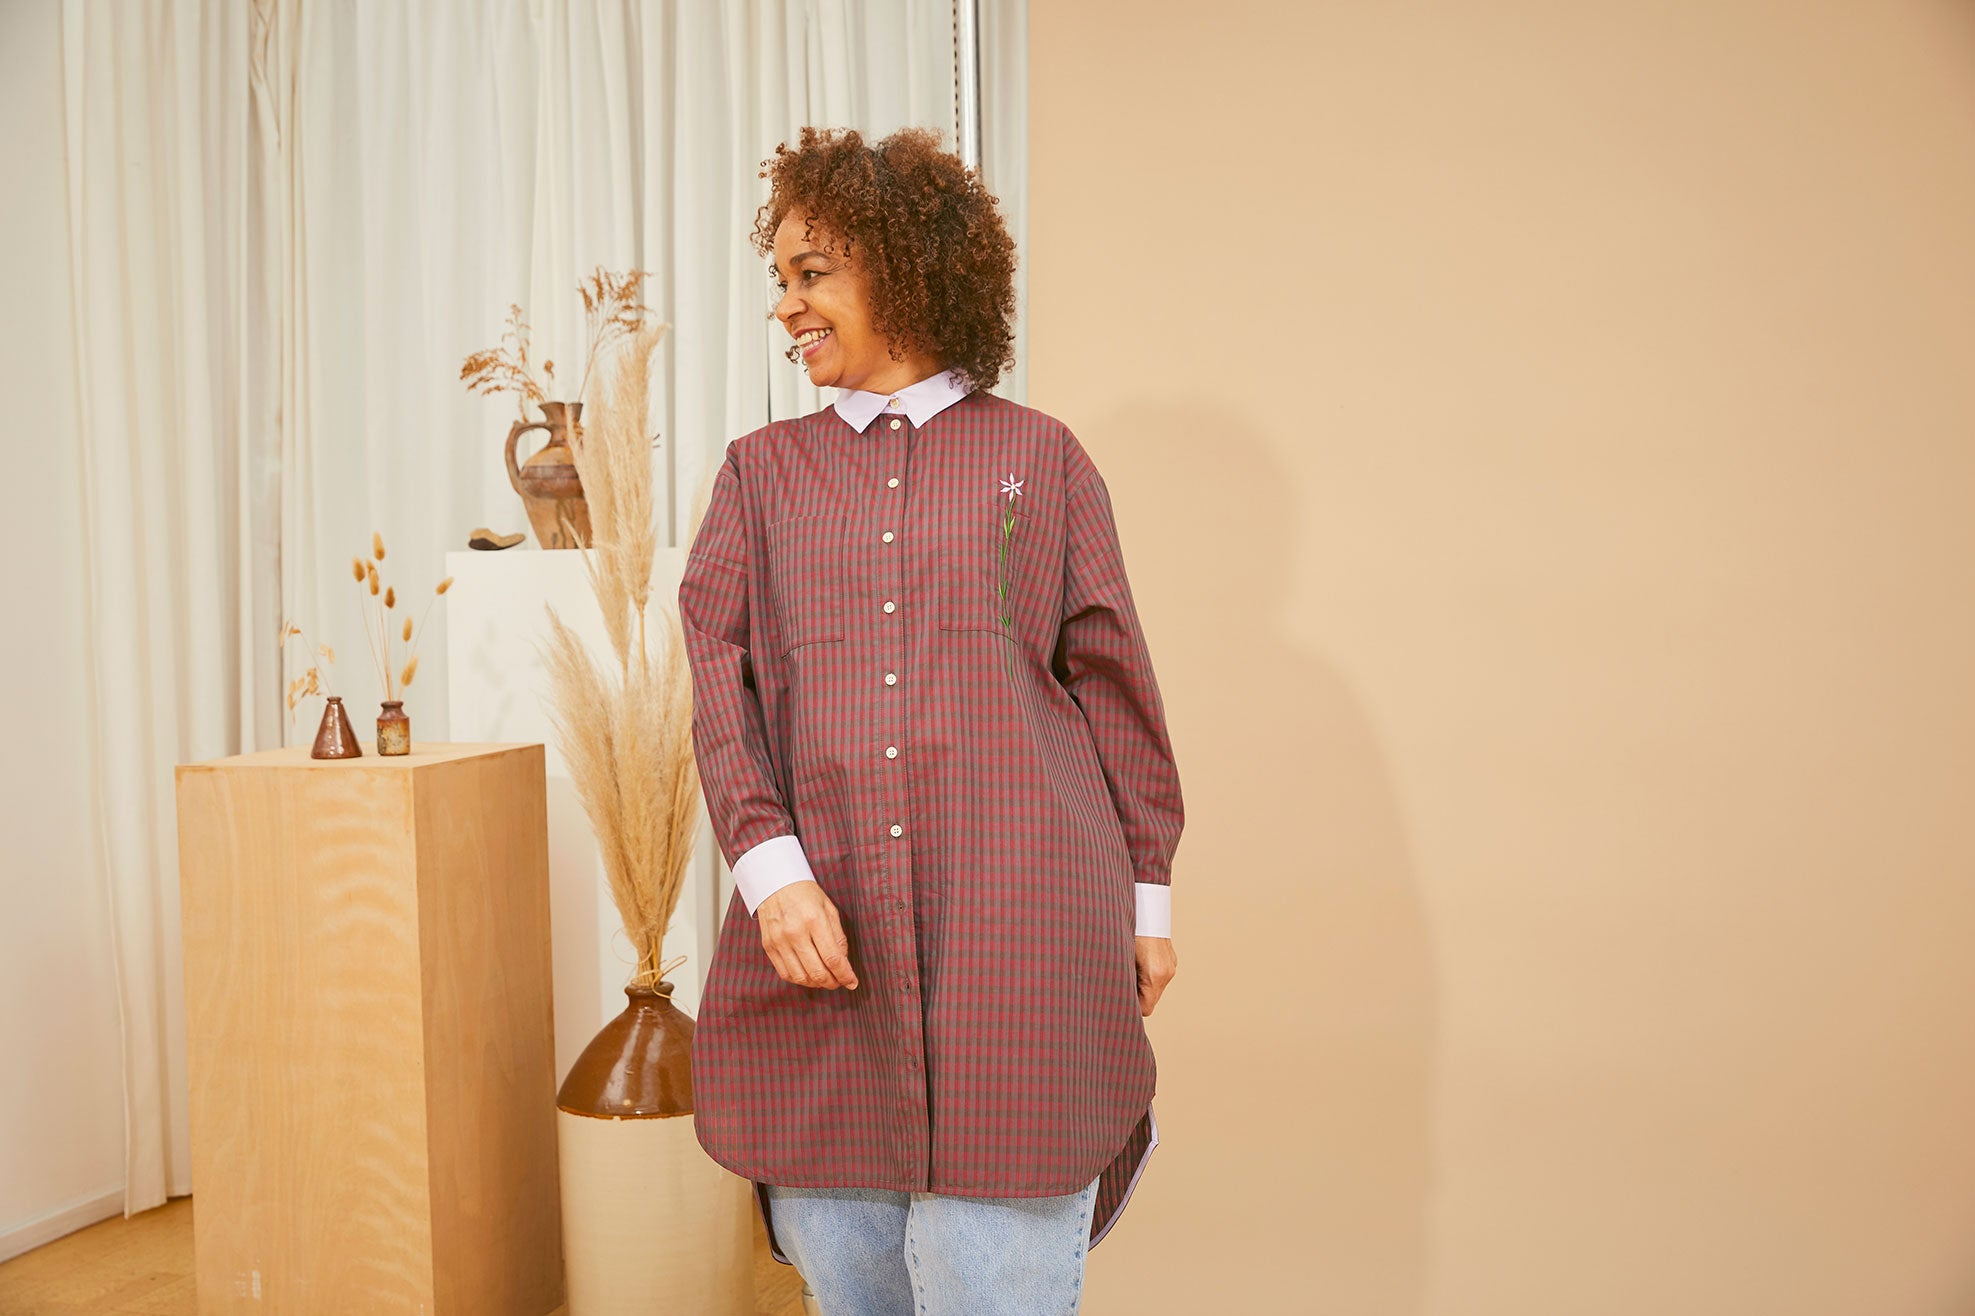 Saywood deadstock Etta Oversized Shirtdress in red check cotton, worn over jeans by model who is looking to one side and smiling, with vintage vases in the background